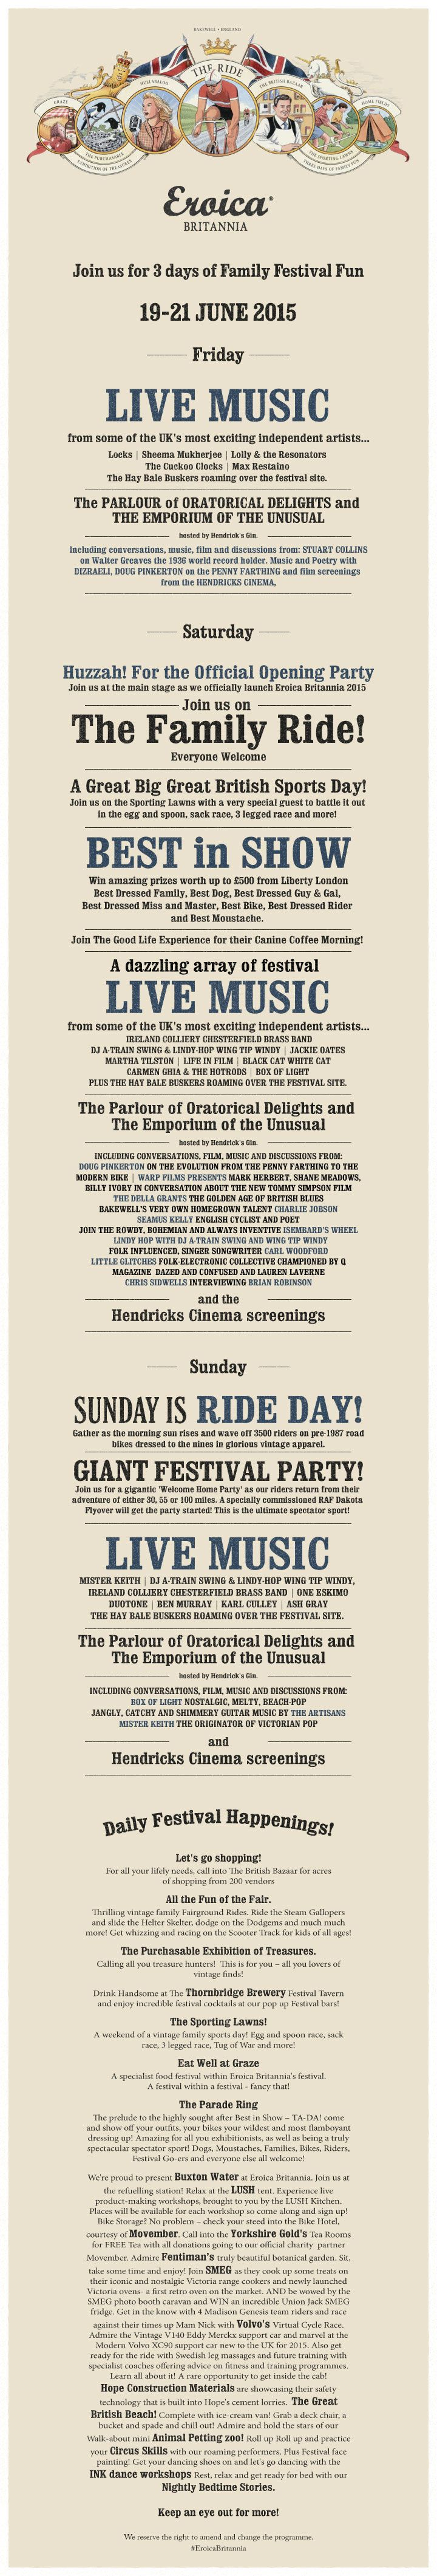 Eroica Britannia 2015 - see you  there if you're going!